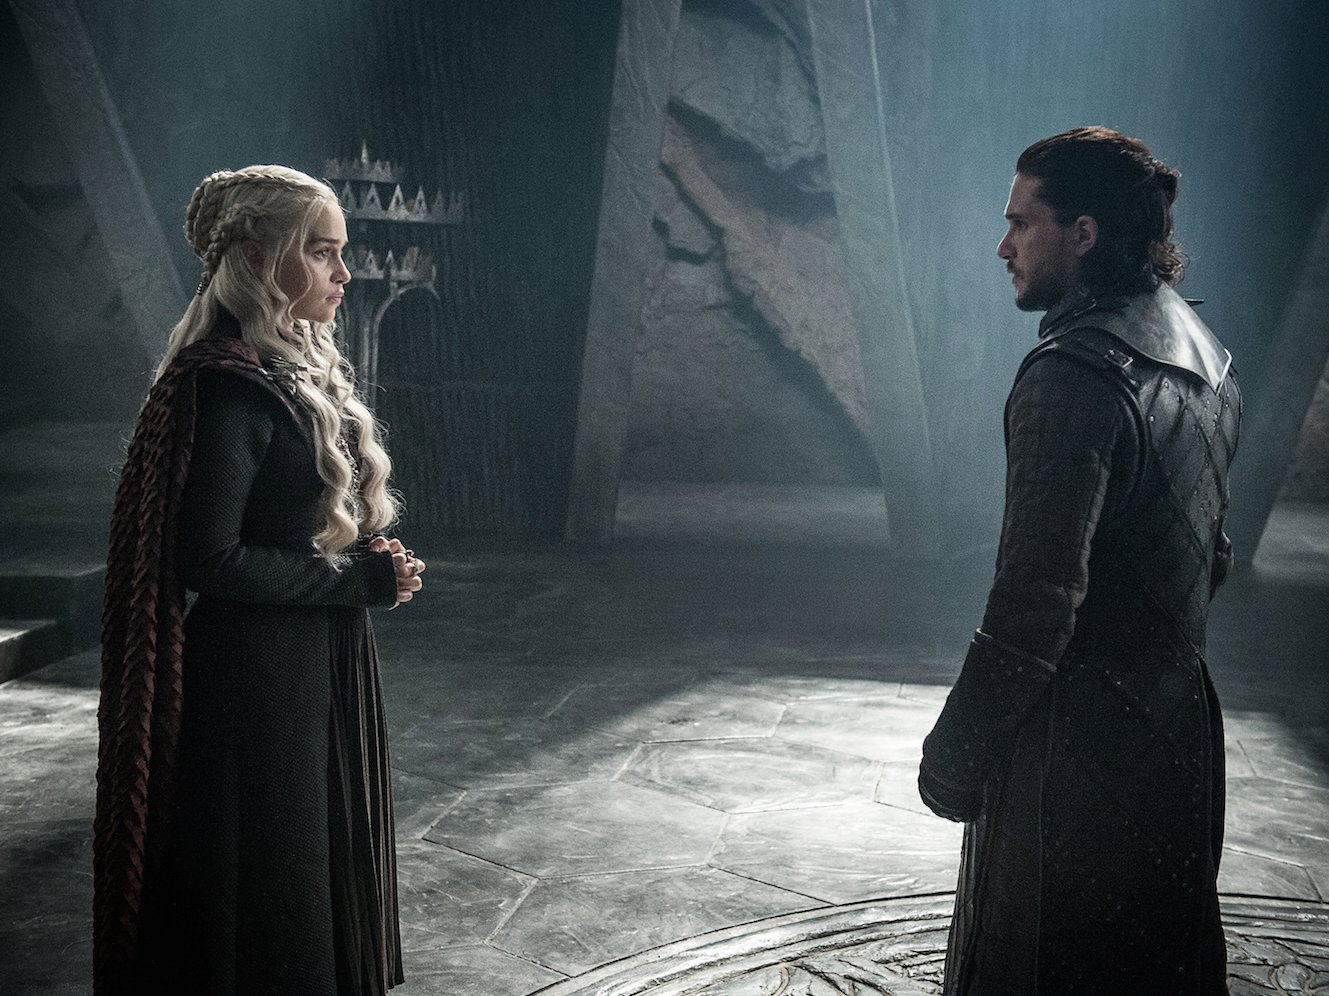 Jon and Daenerys: When Villain Archetypes Become Heroes